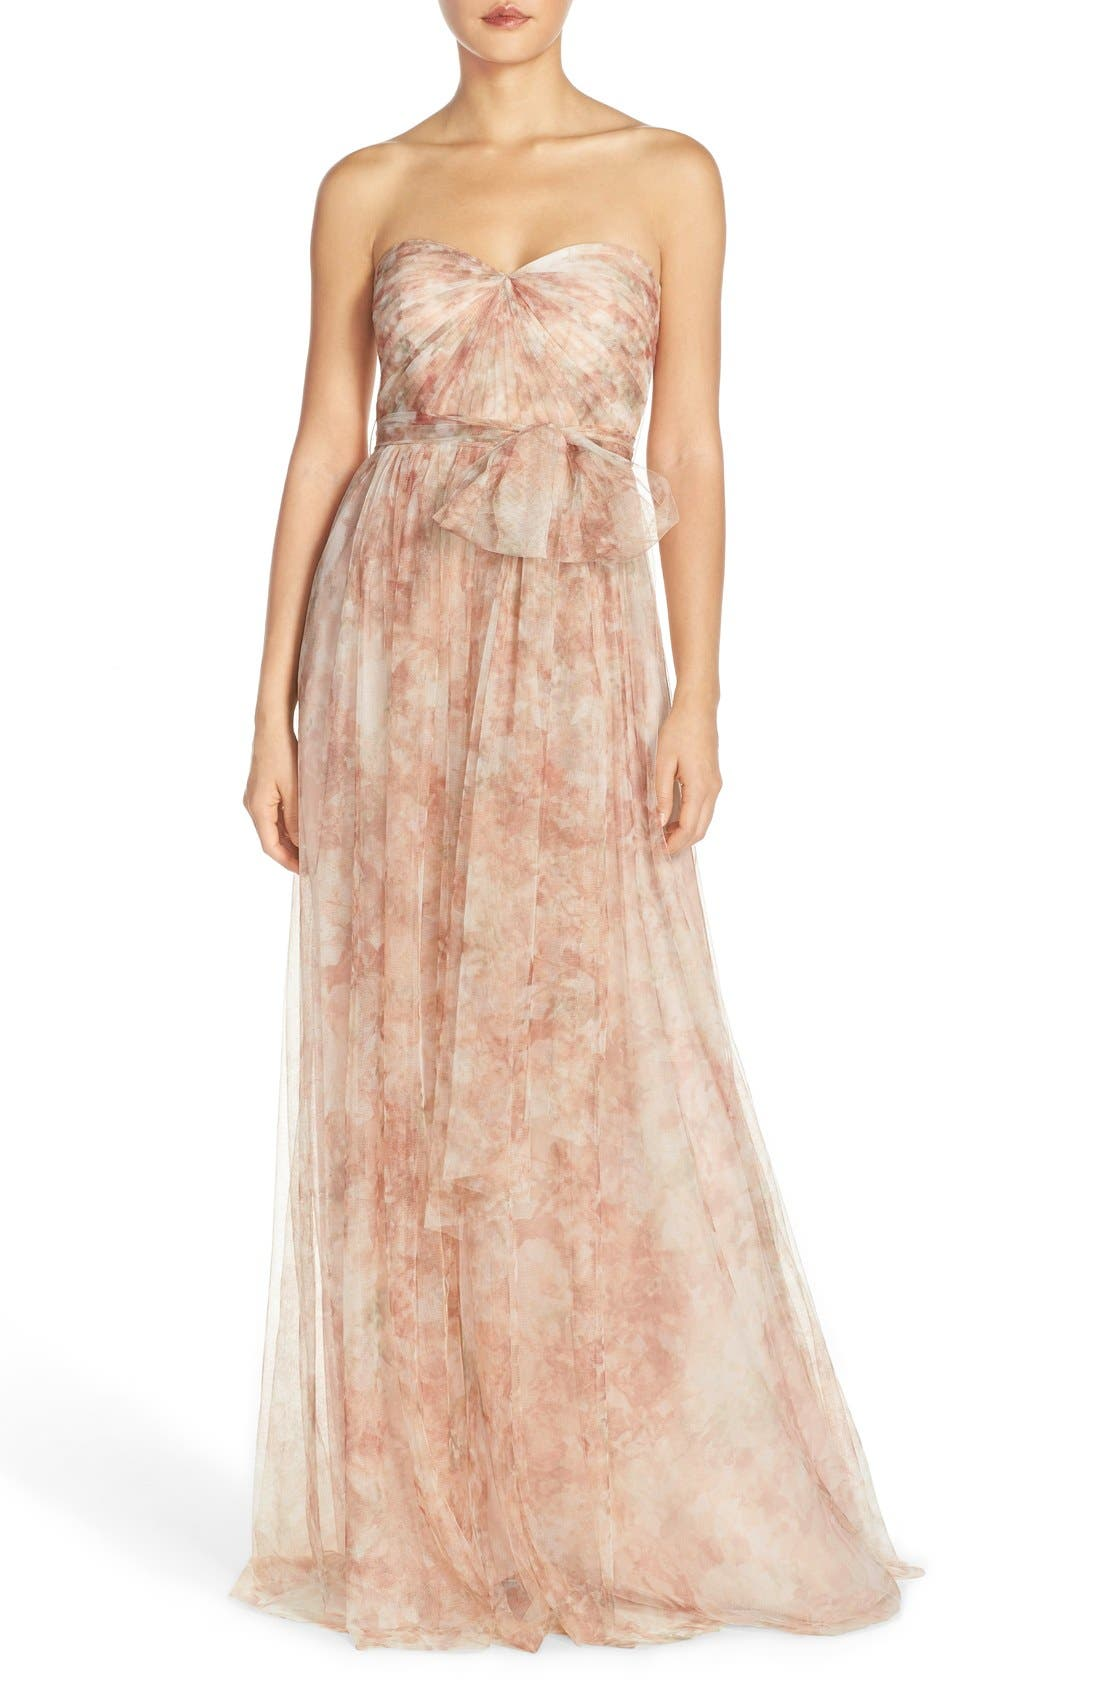 Main Image - Jenny Yoo 'Annabelle' Print Tulle Convertible Column Gown